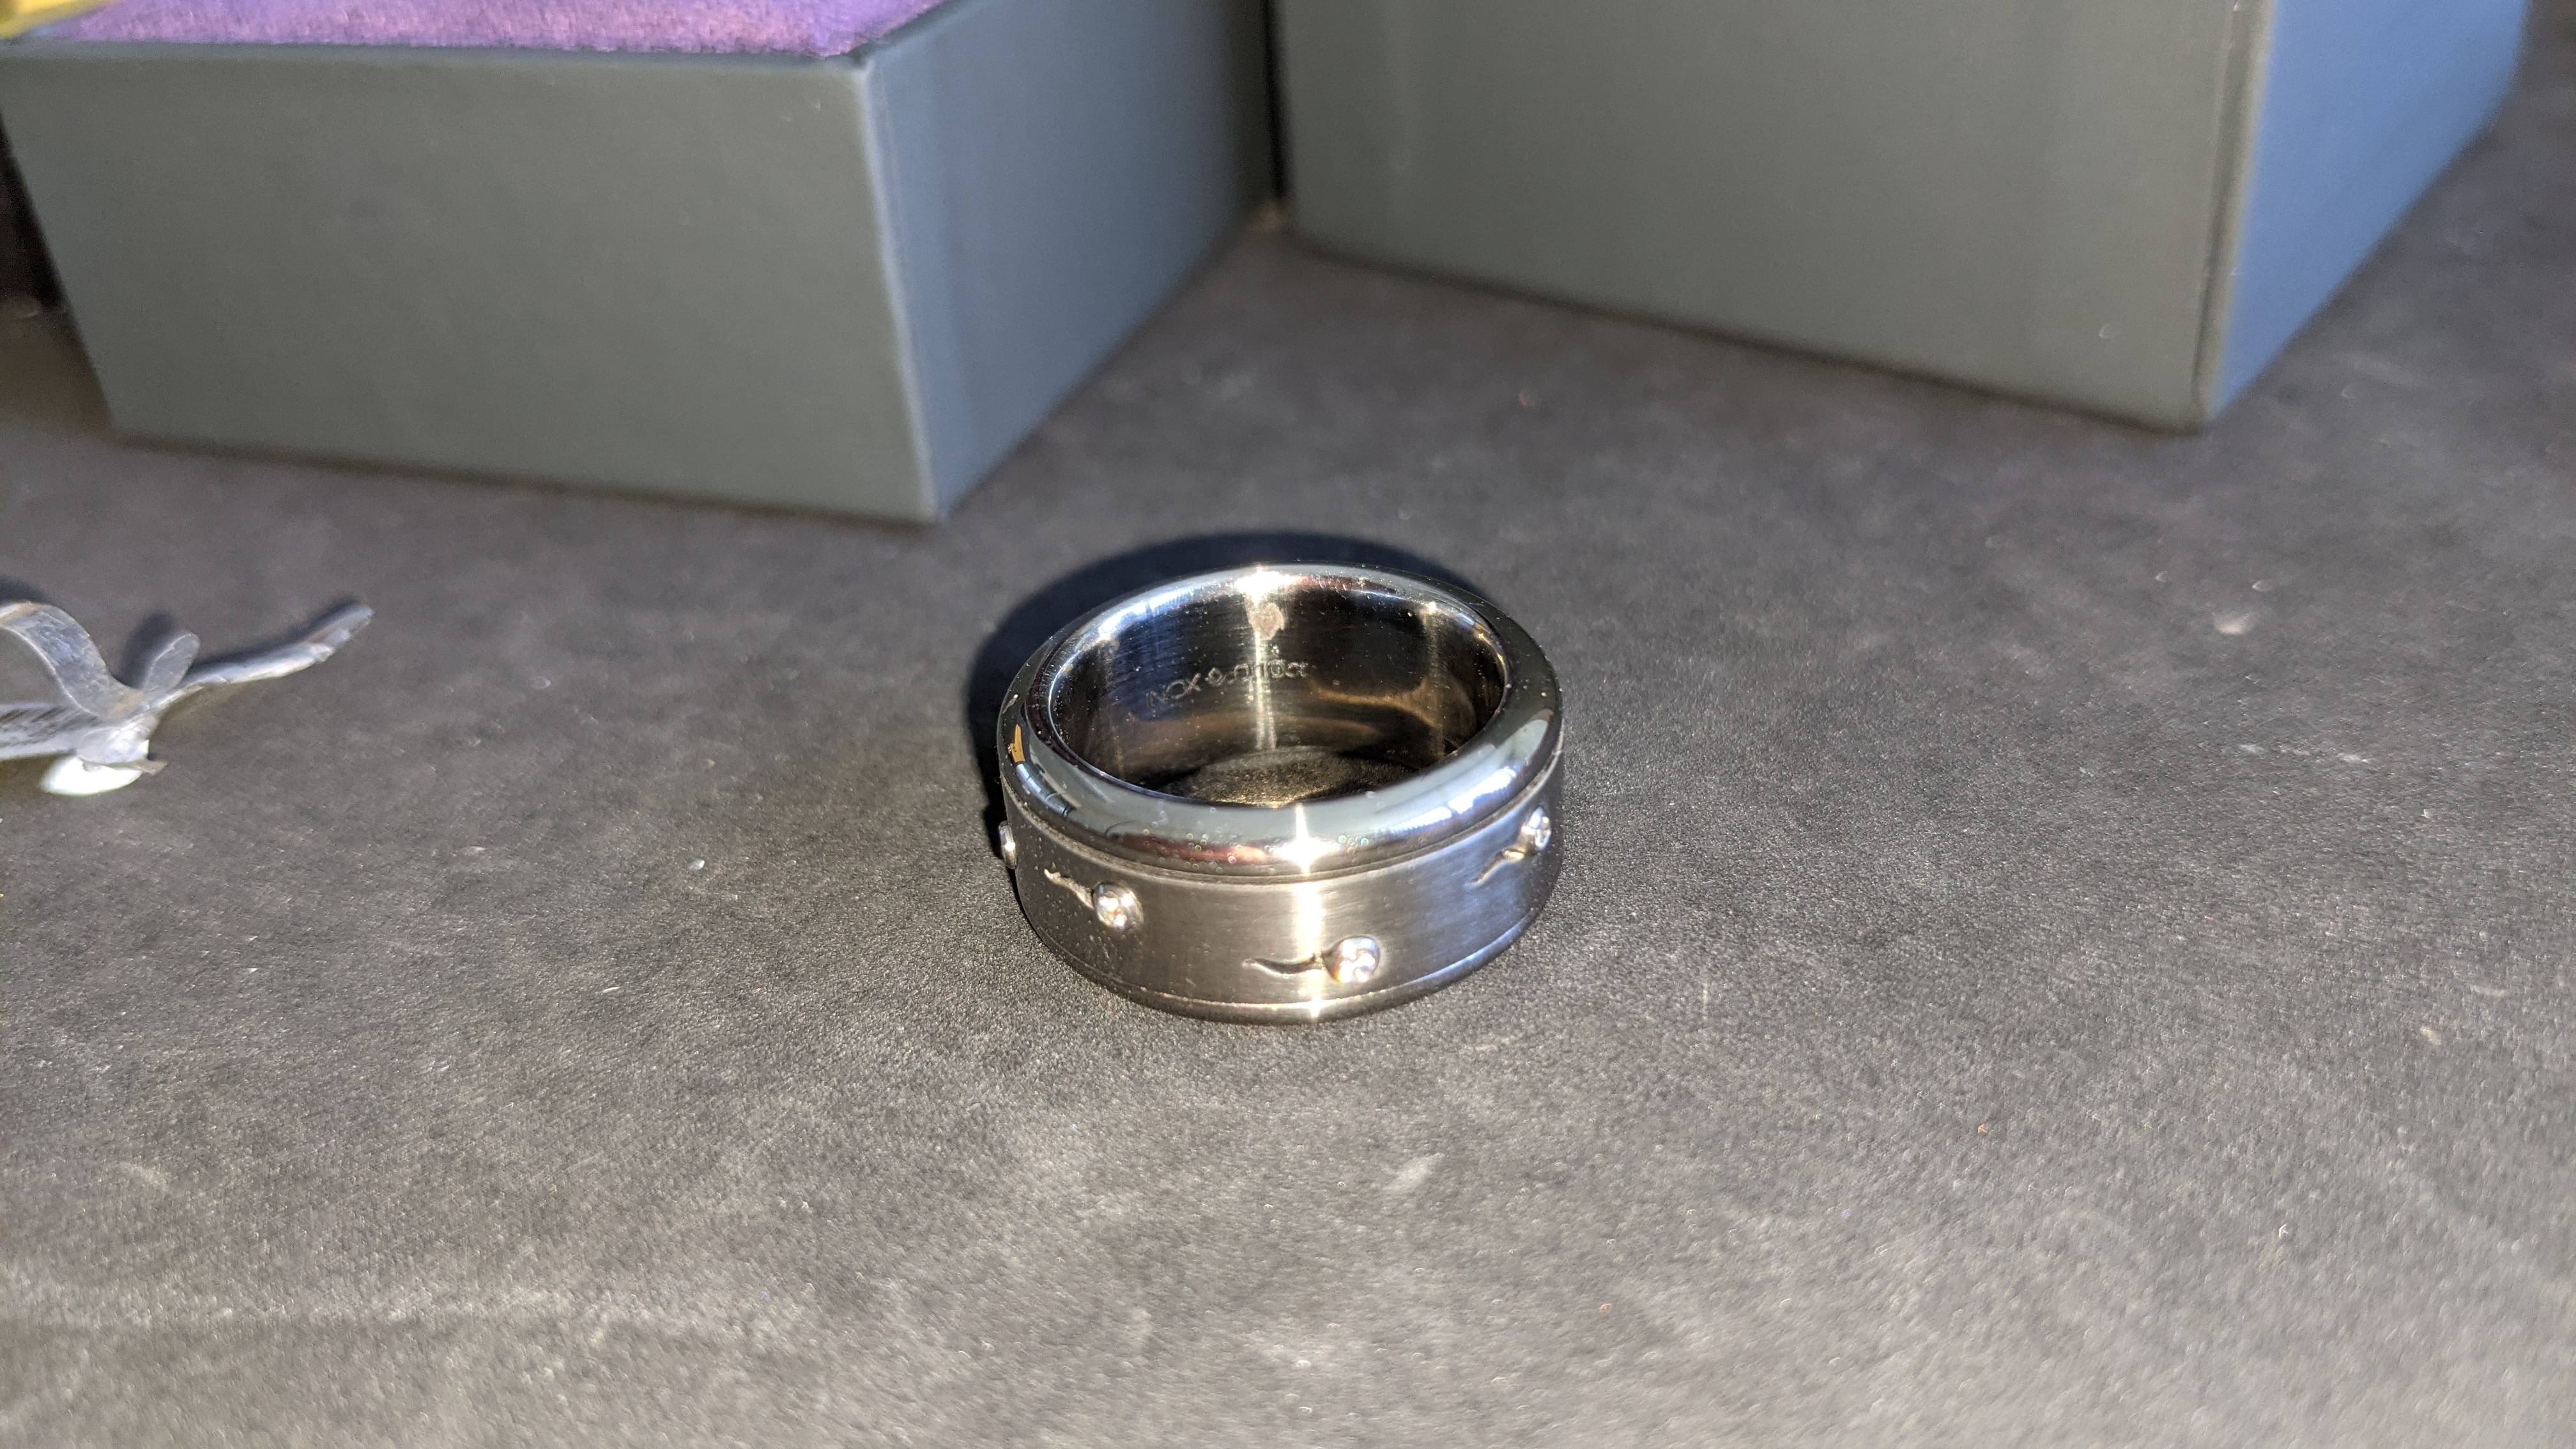 Stainless steel & diamond spin ring RRP £455 - Image 10 of 13